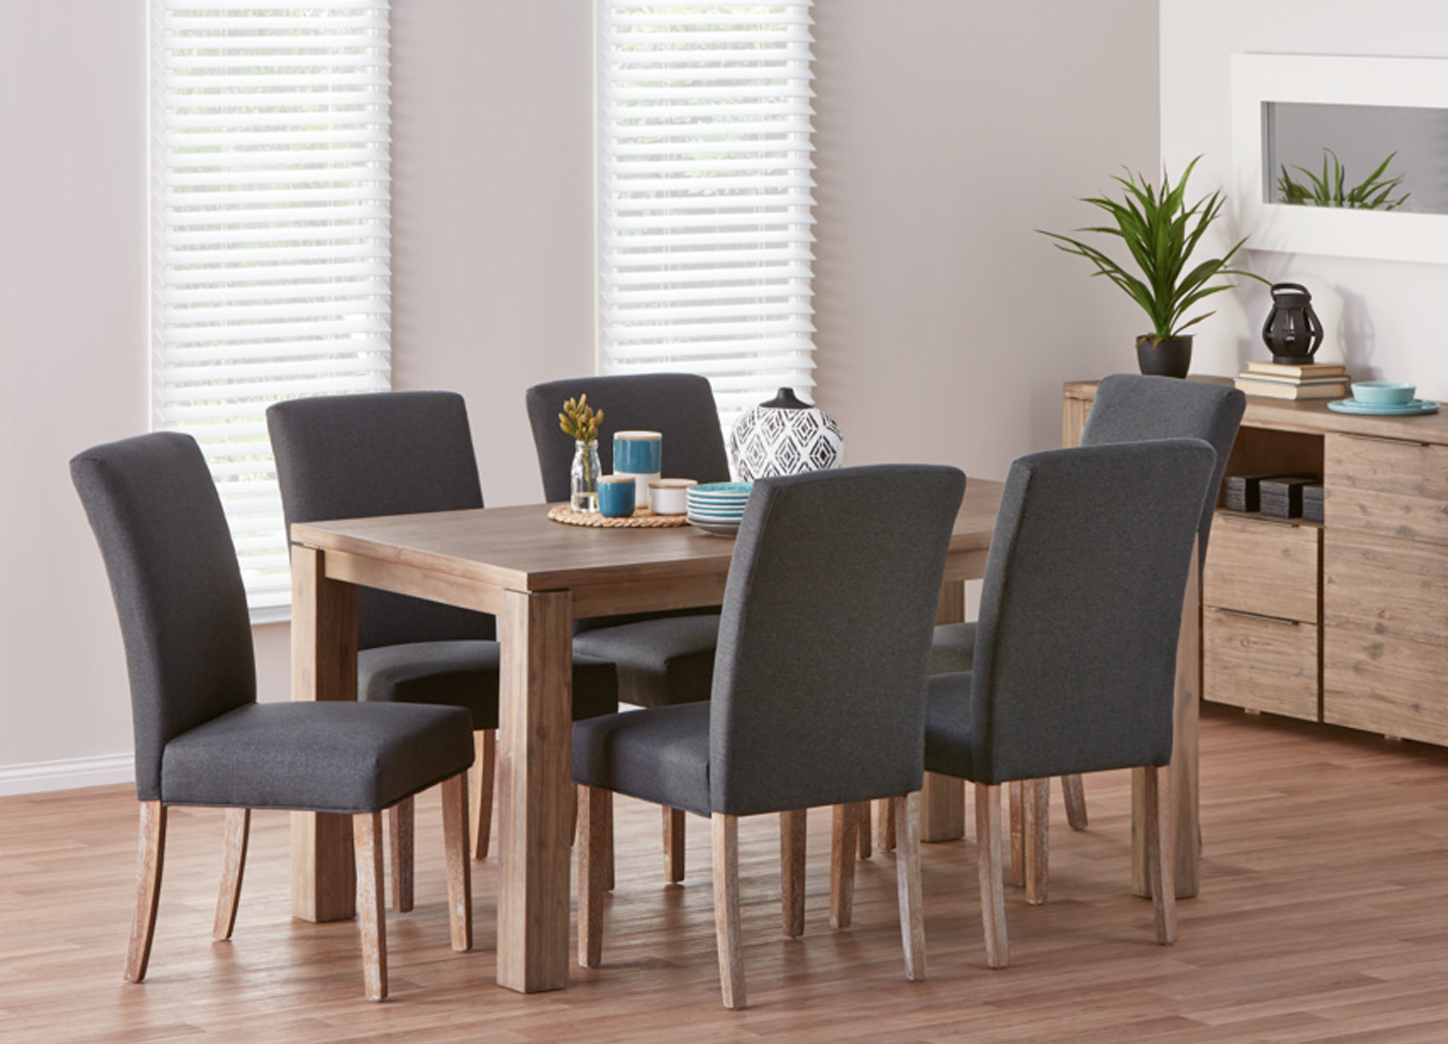 The Acacia Wood Showcases The Natural Beauty Of The Timbers Grain